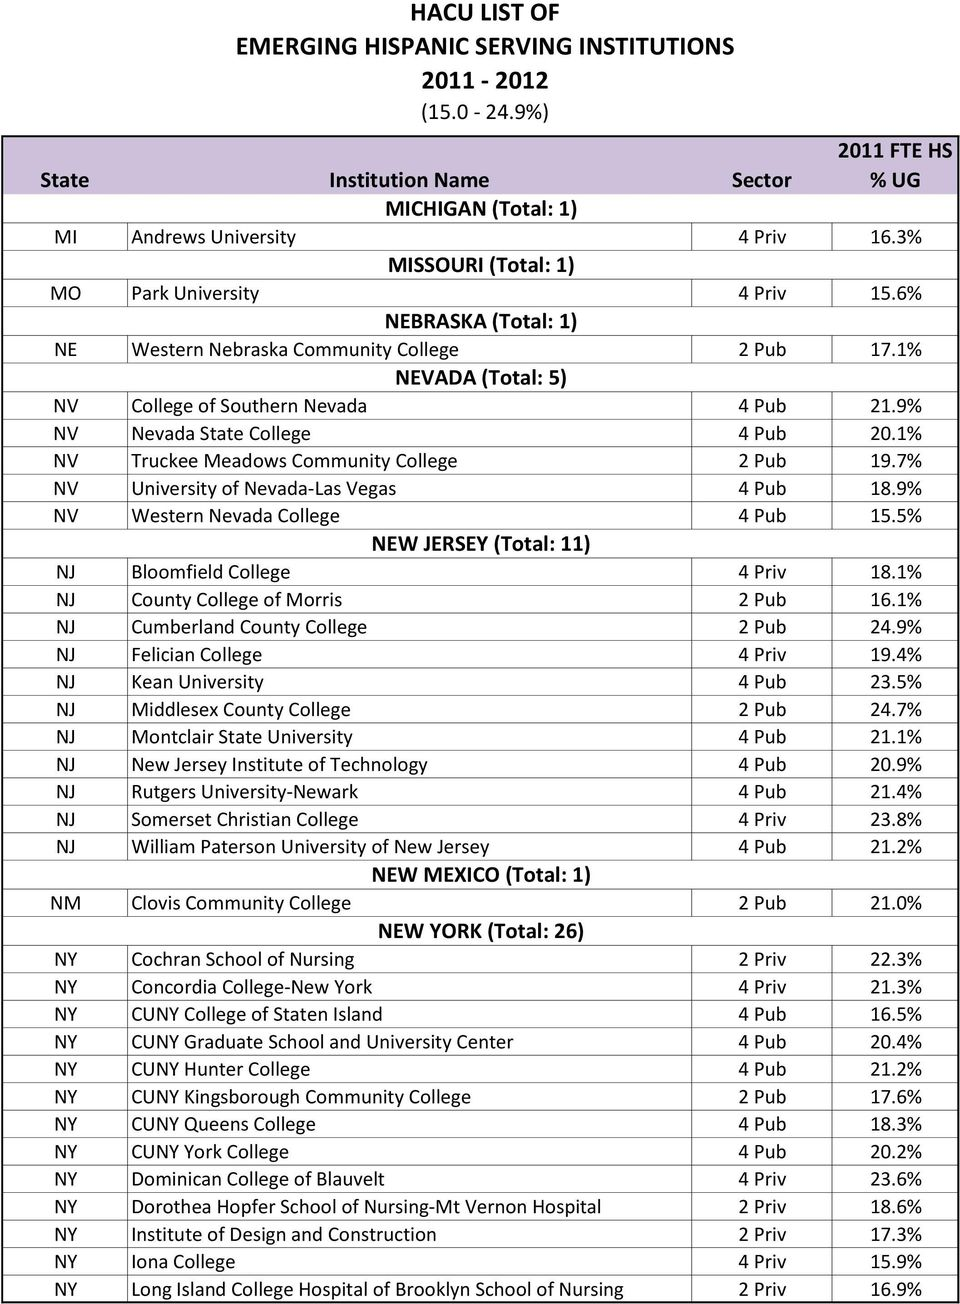 9% NV Western Nevada College 4 Pub 15.5% NEW JERSEY (Total: 11) NJ Bloomfield College 4 Priv 18.1% NJ County College of Morris 2 Pub 16.1% NJ Cumberland County College 2 Pub 24.